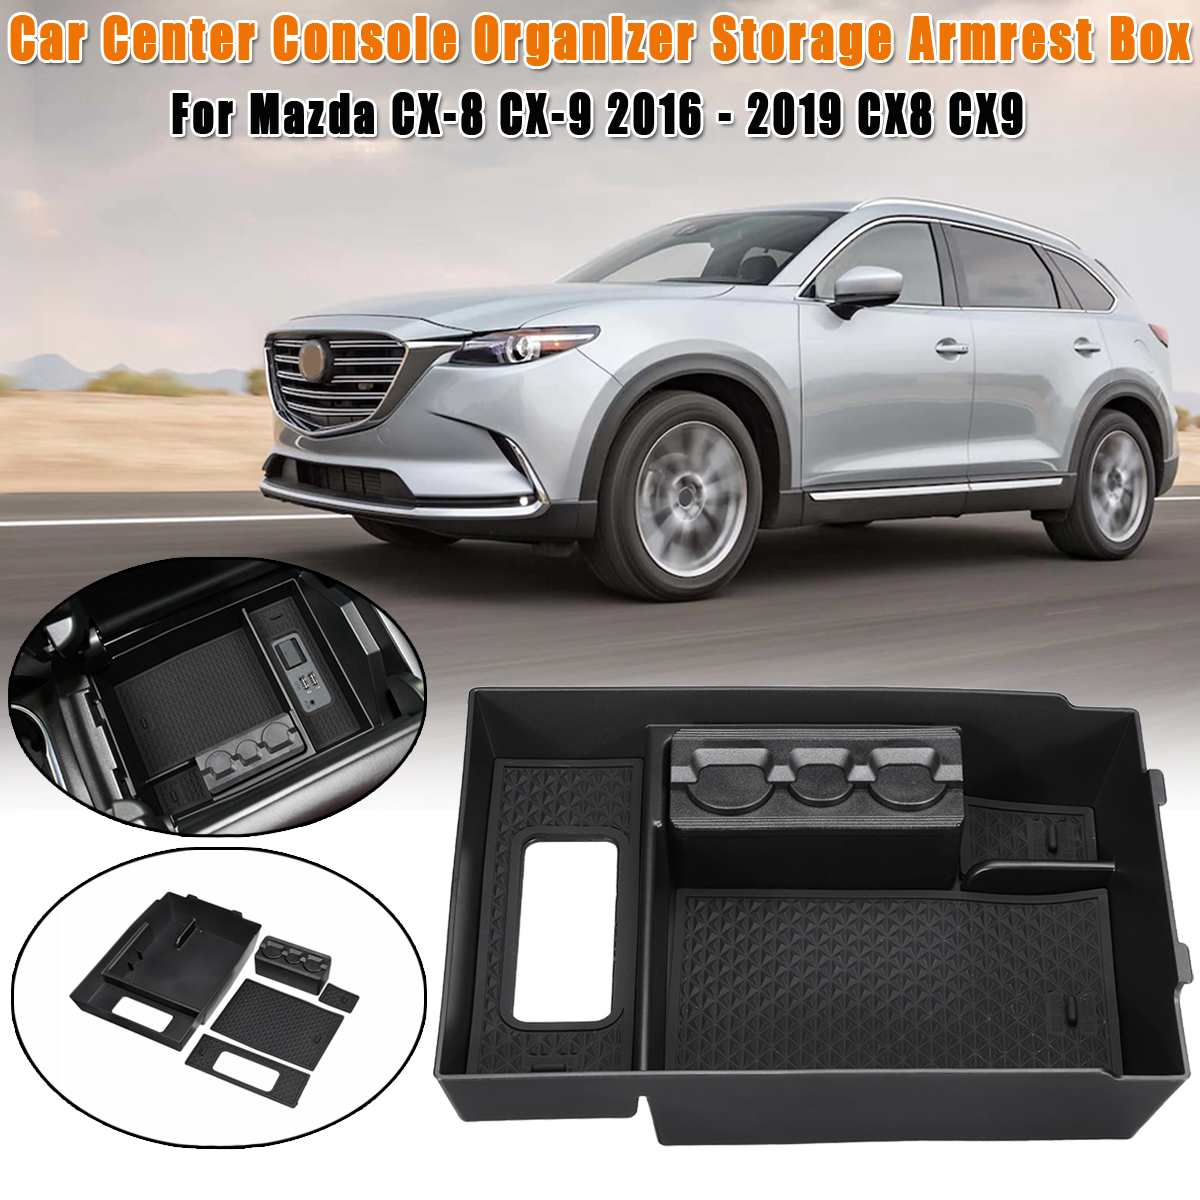 Car central armrest box For <font><b>MAZDA</b></font> <font><b>CX</b></font>-8 <font><b>CX</b></font>-<font><b>9</b></font> 2016-2019 CX8 CX9 Interior <font><b>Accessories</b></font> Stowing Tidying Center Console Organizer image